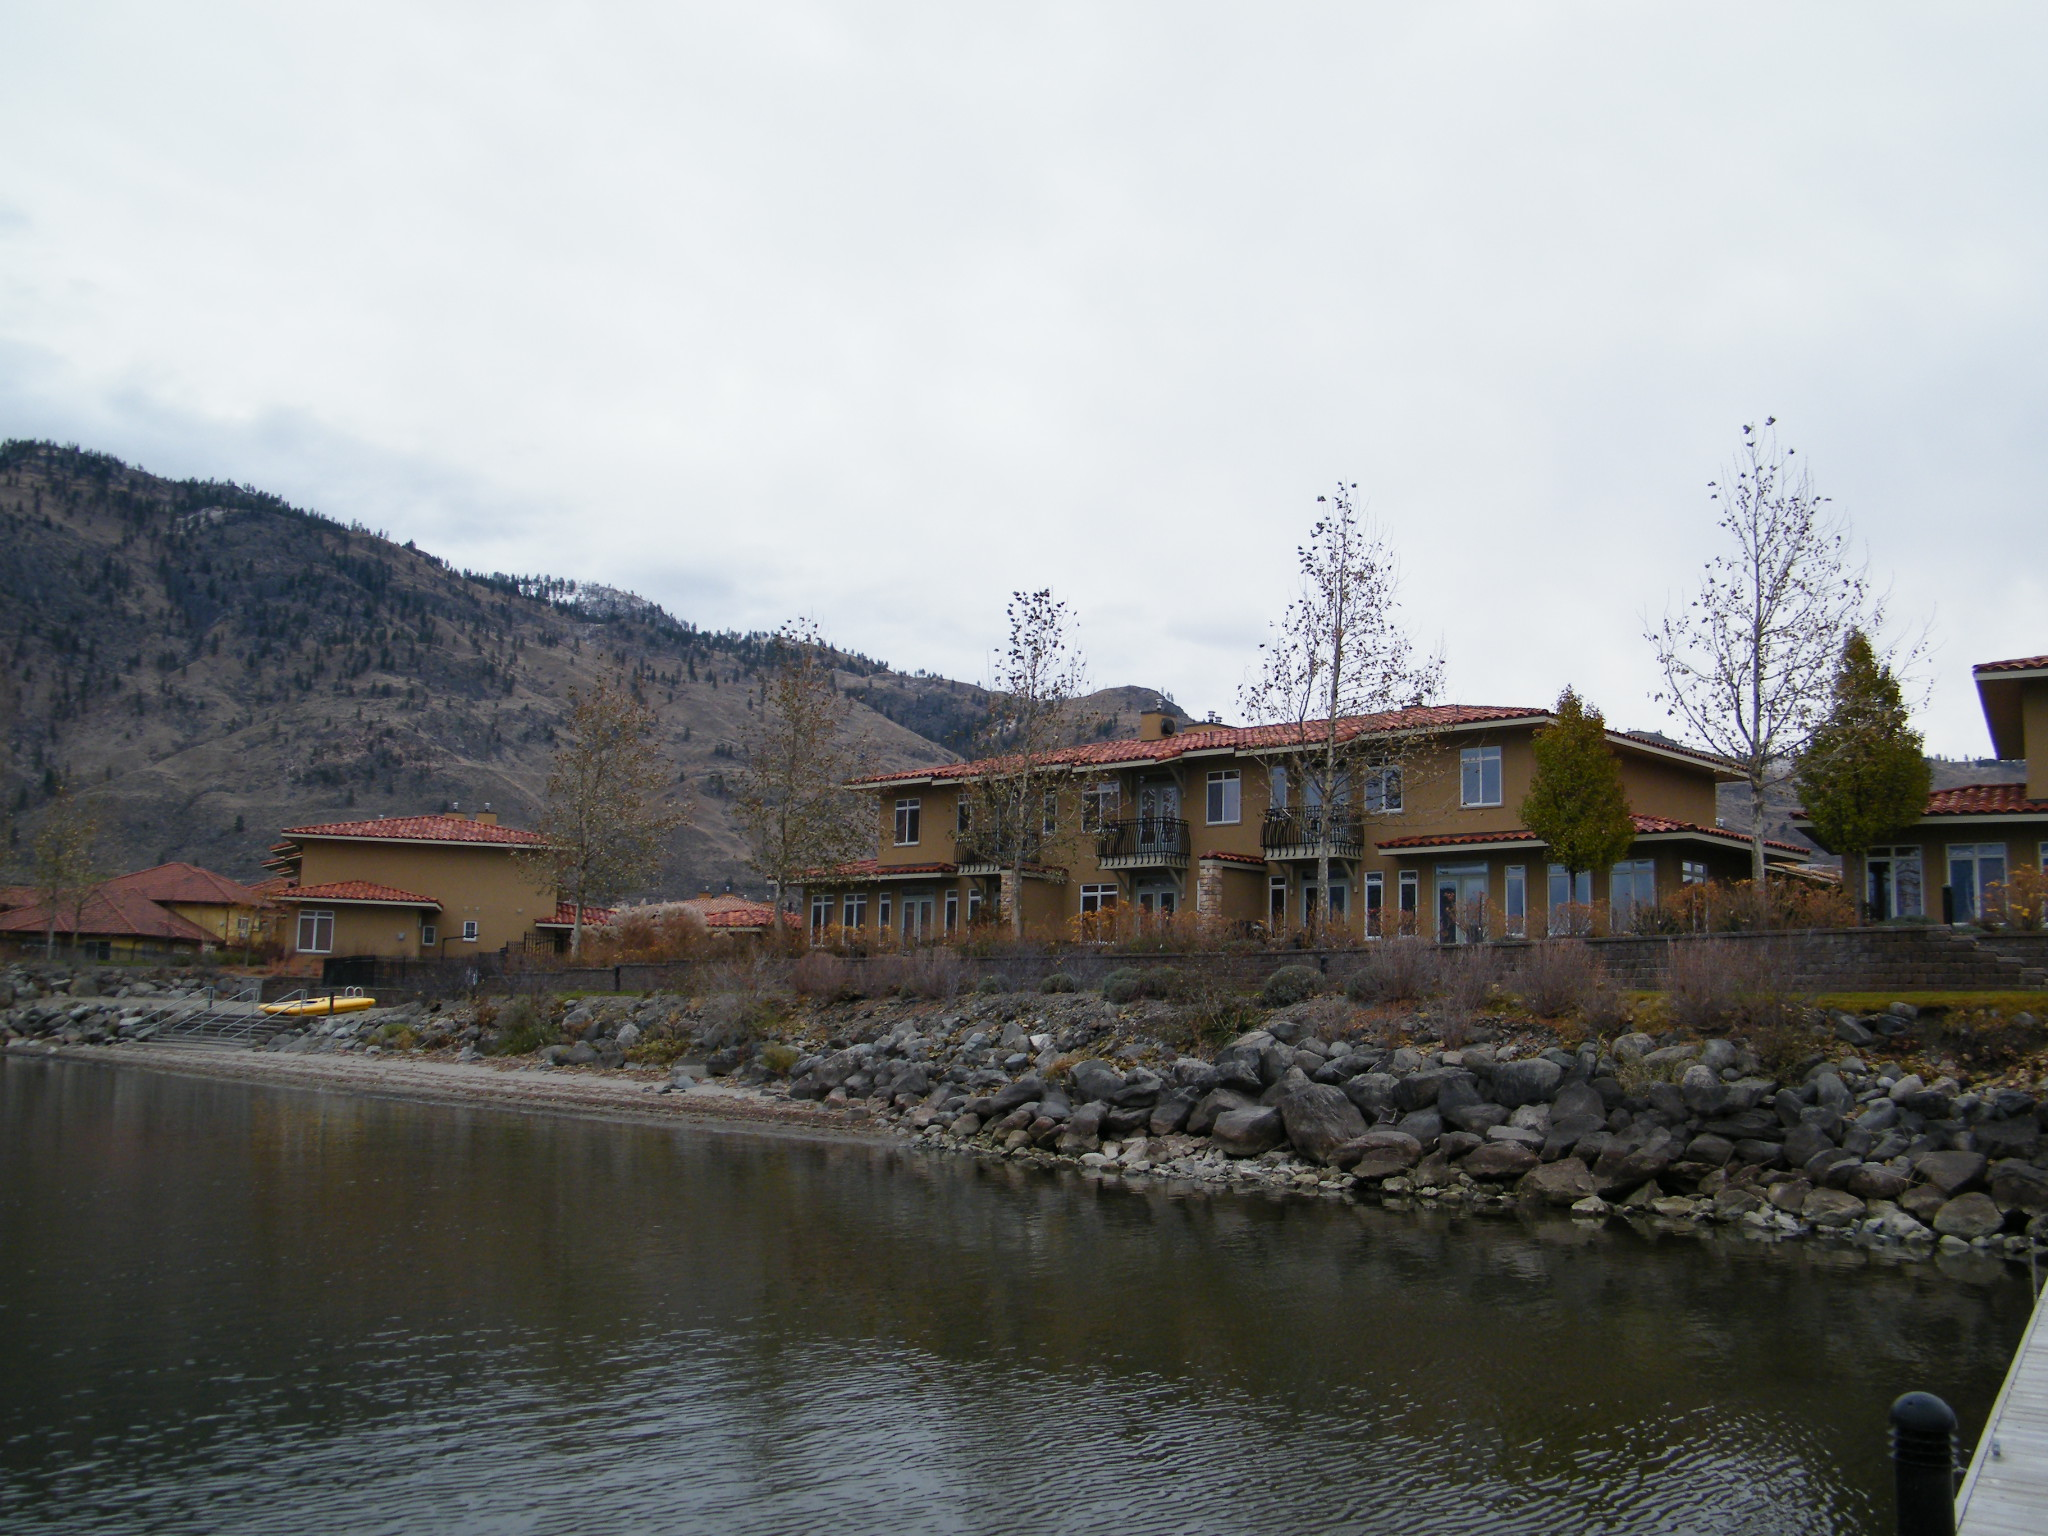 This is an example of a property located in Osoyoos, British Columbia - Depreciation Report has been completed by Delta Appraisal Corporation